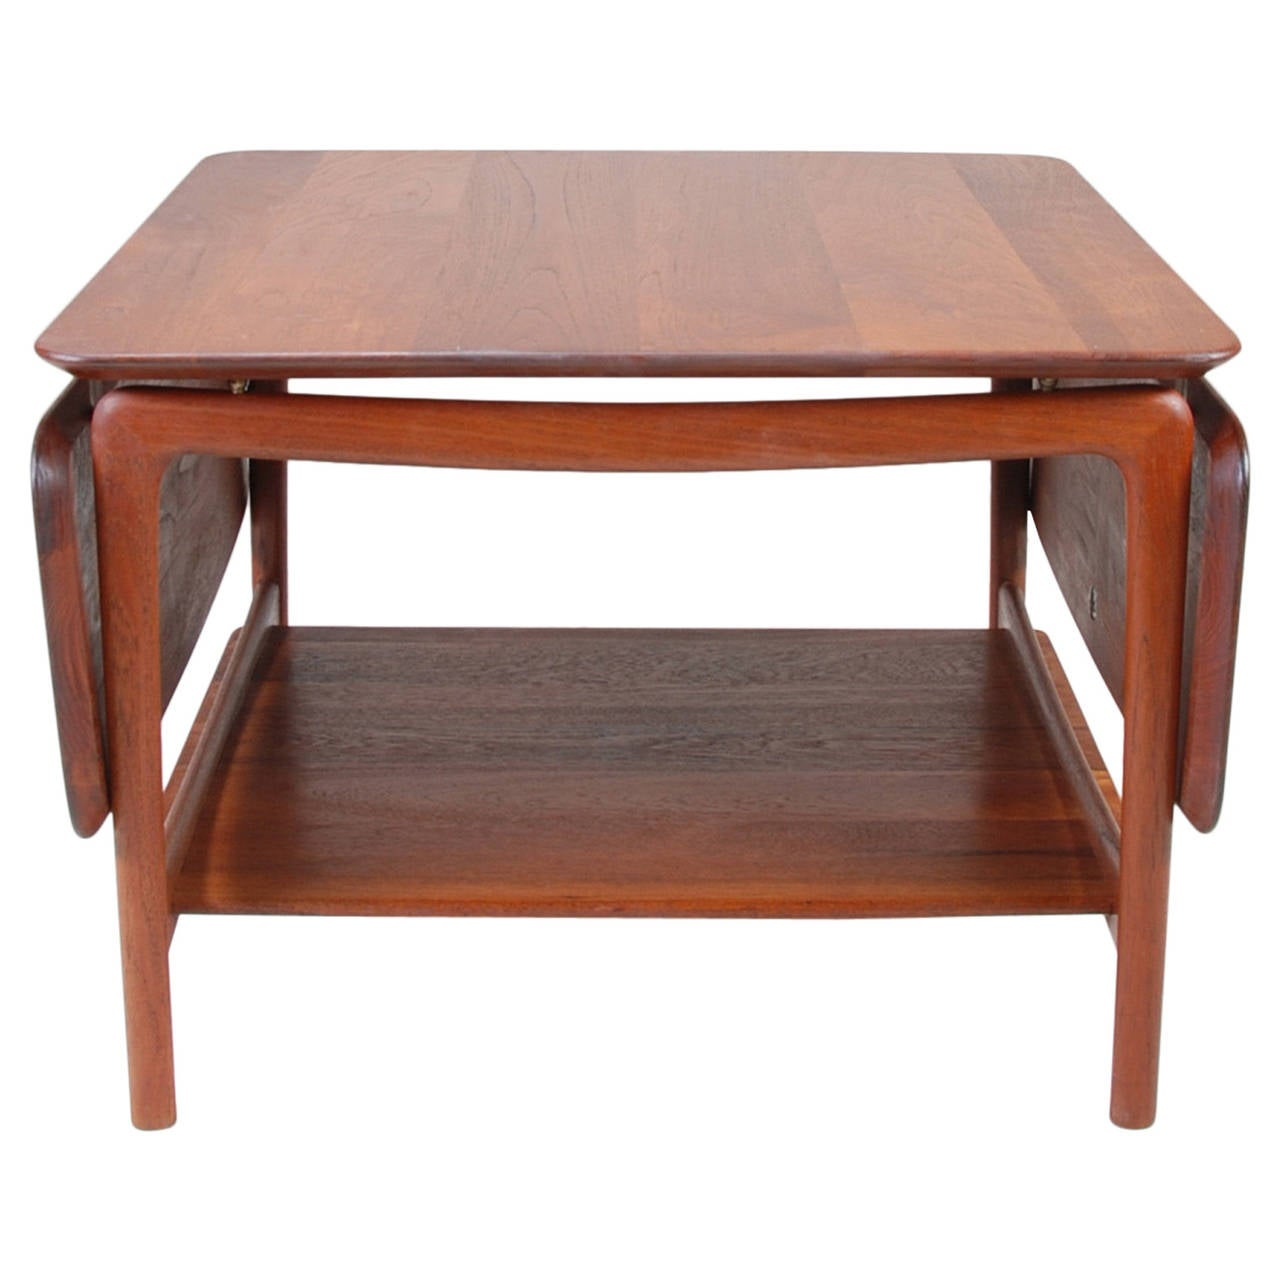 Solid Teak DropLeaf Coffee Table by Peter Hvidt for John Stuart